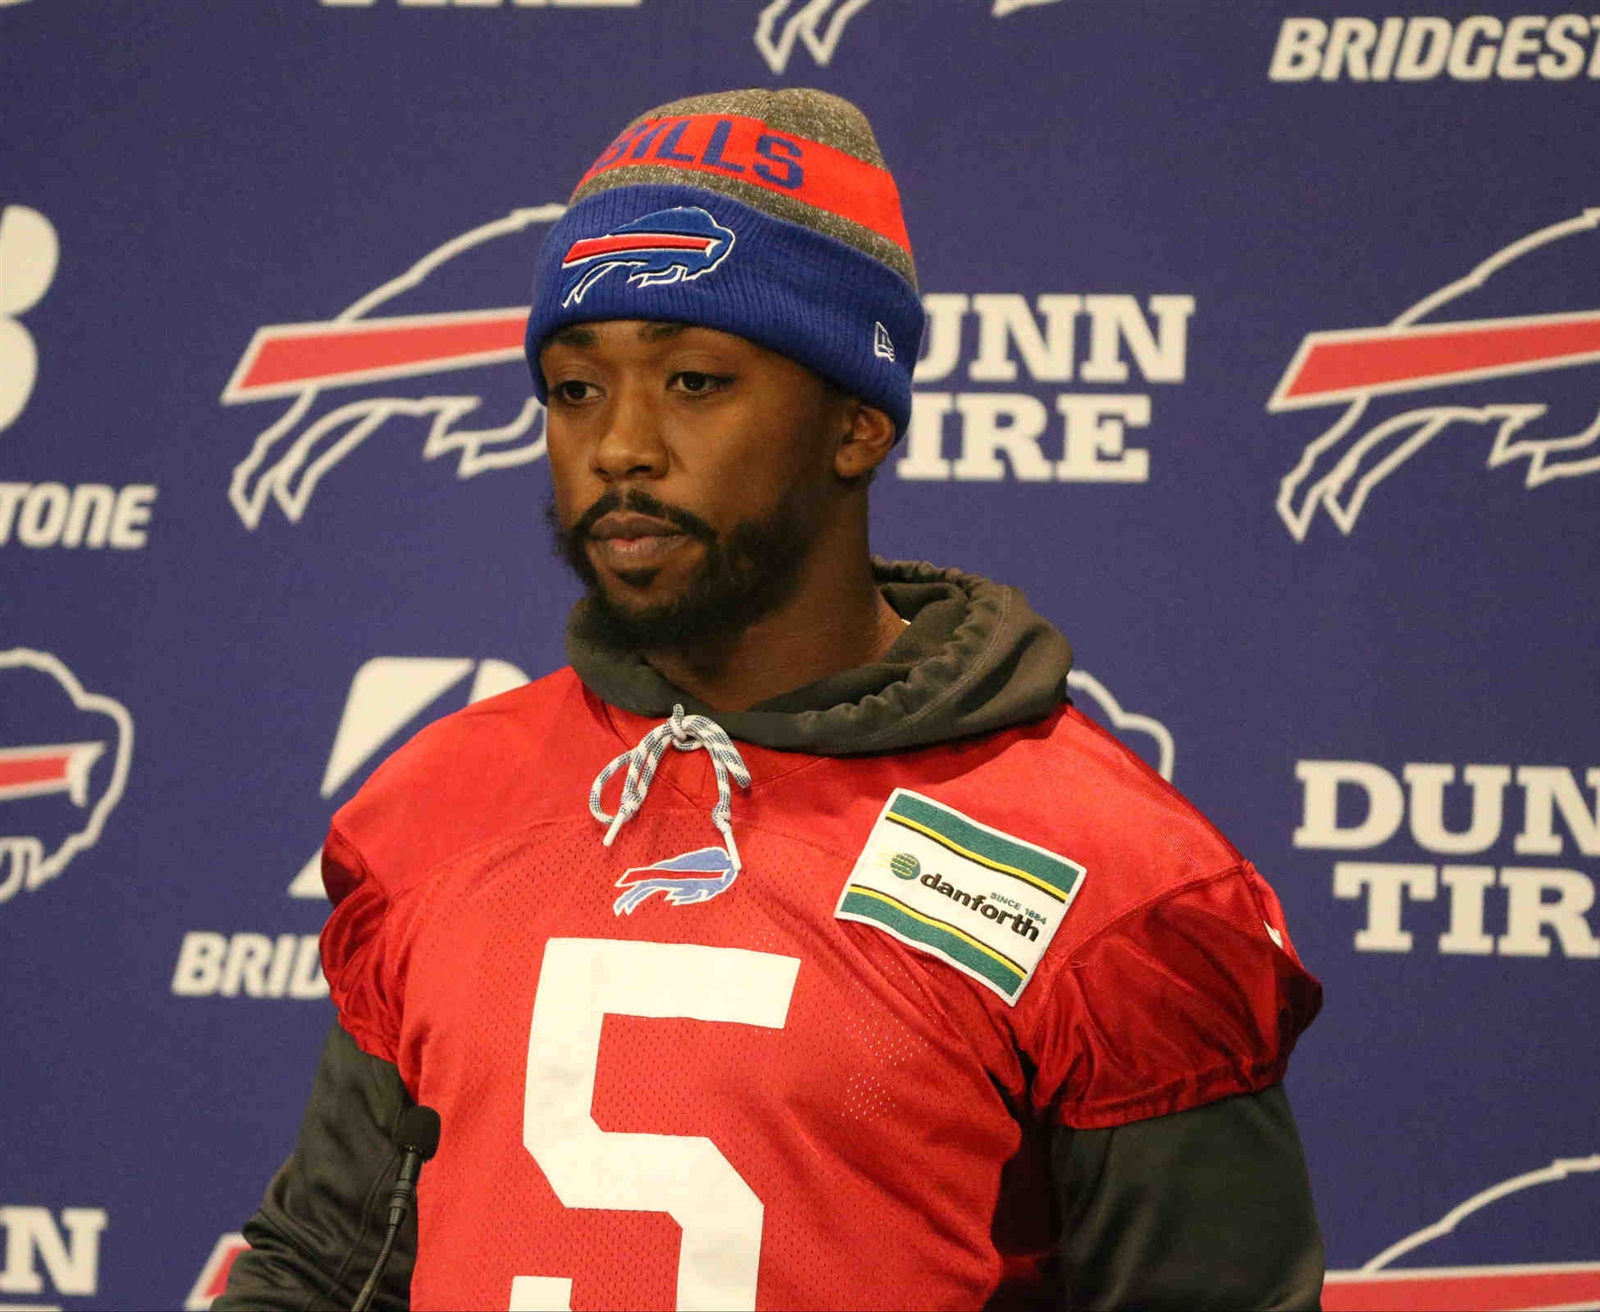 Buffalo Bills quarterback Tyrod Taylor talks to the media about being benched by Buffalo Bills head coach Sean McDermott.